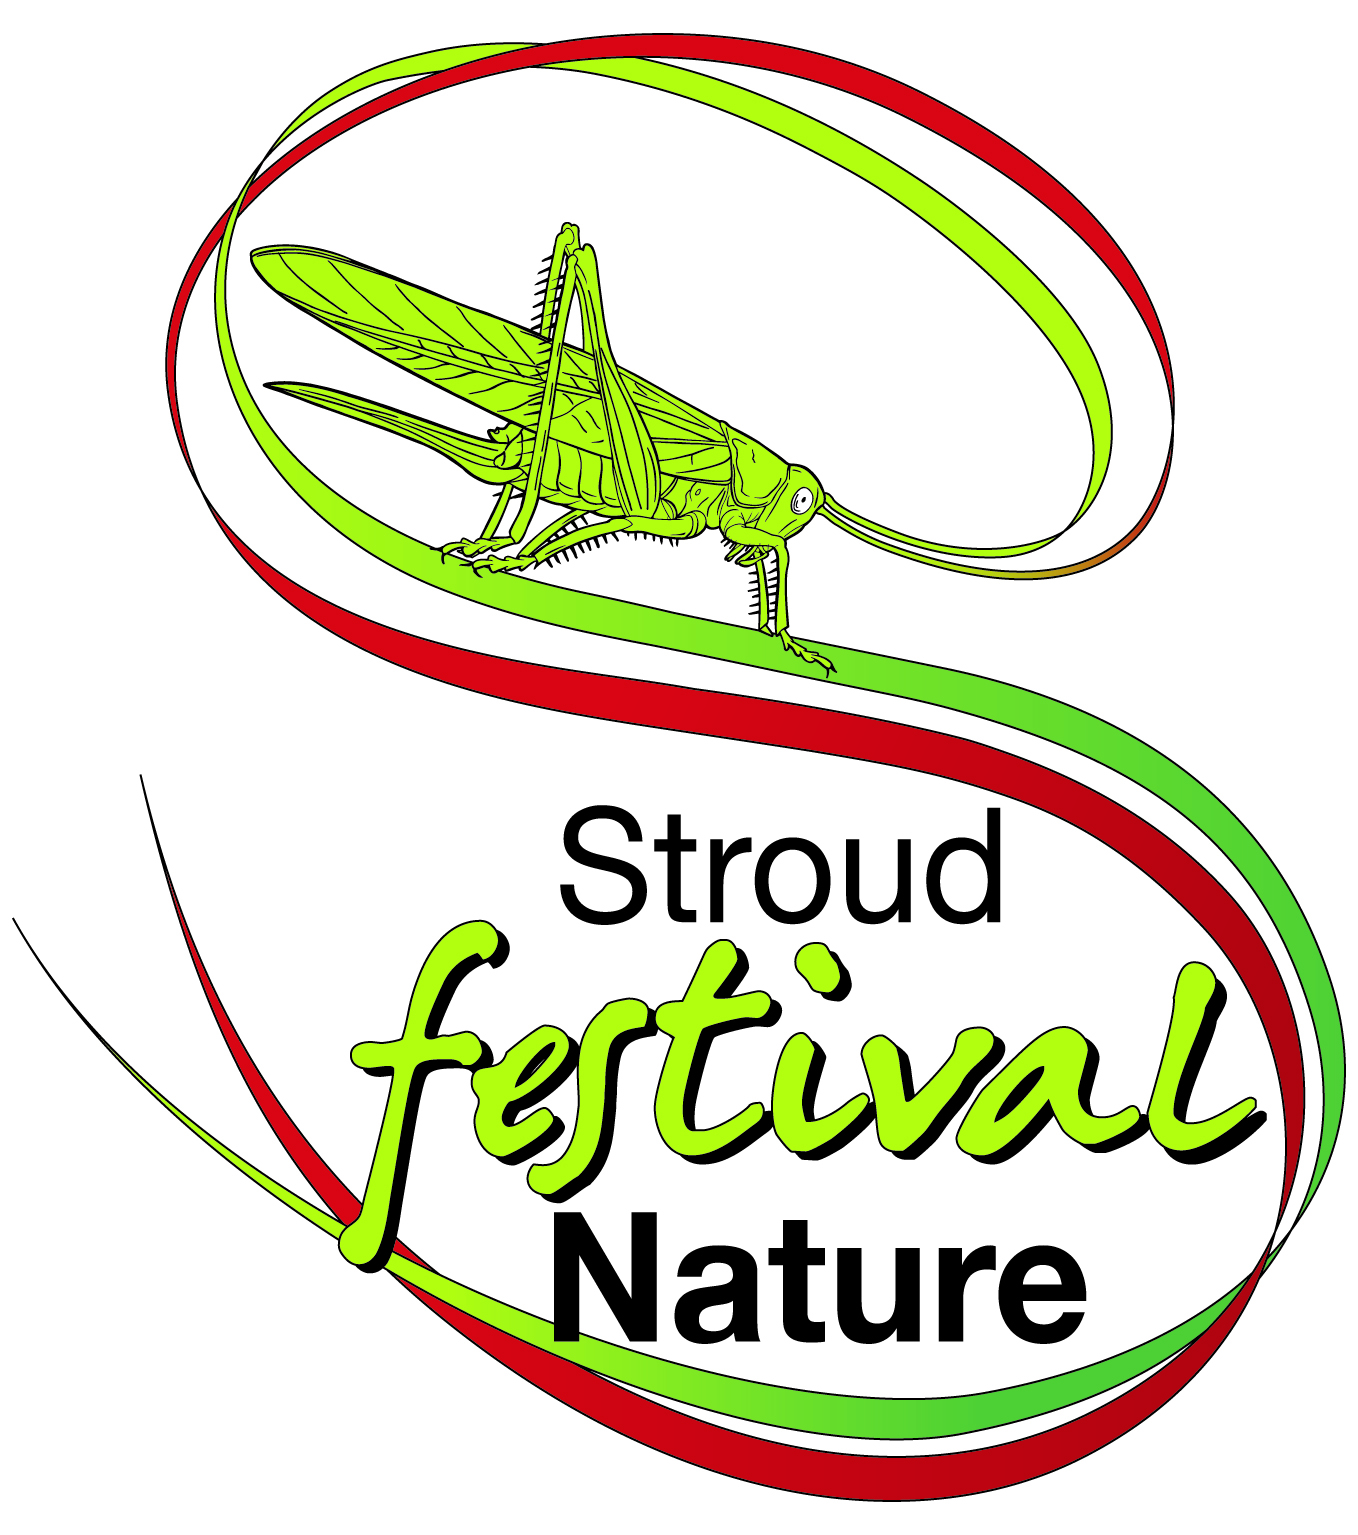 Stroud Festival of Nature